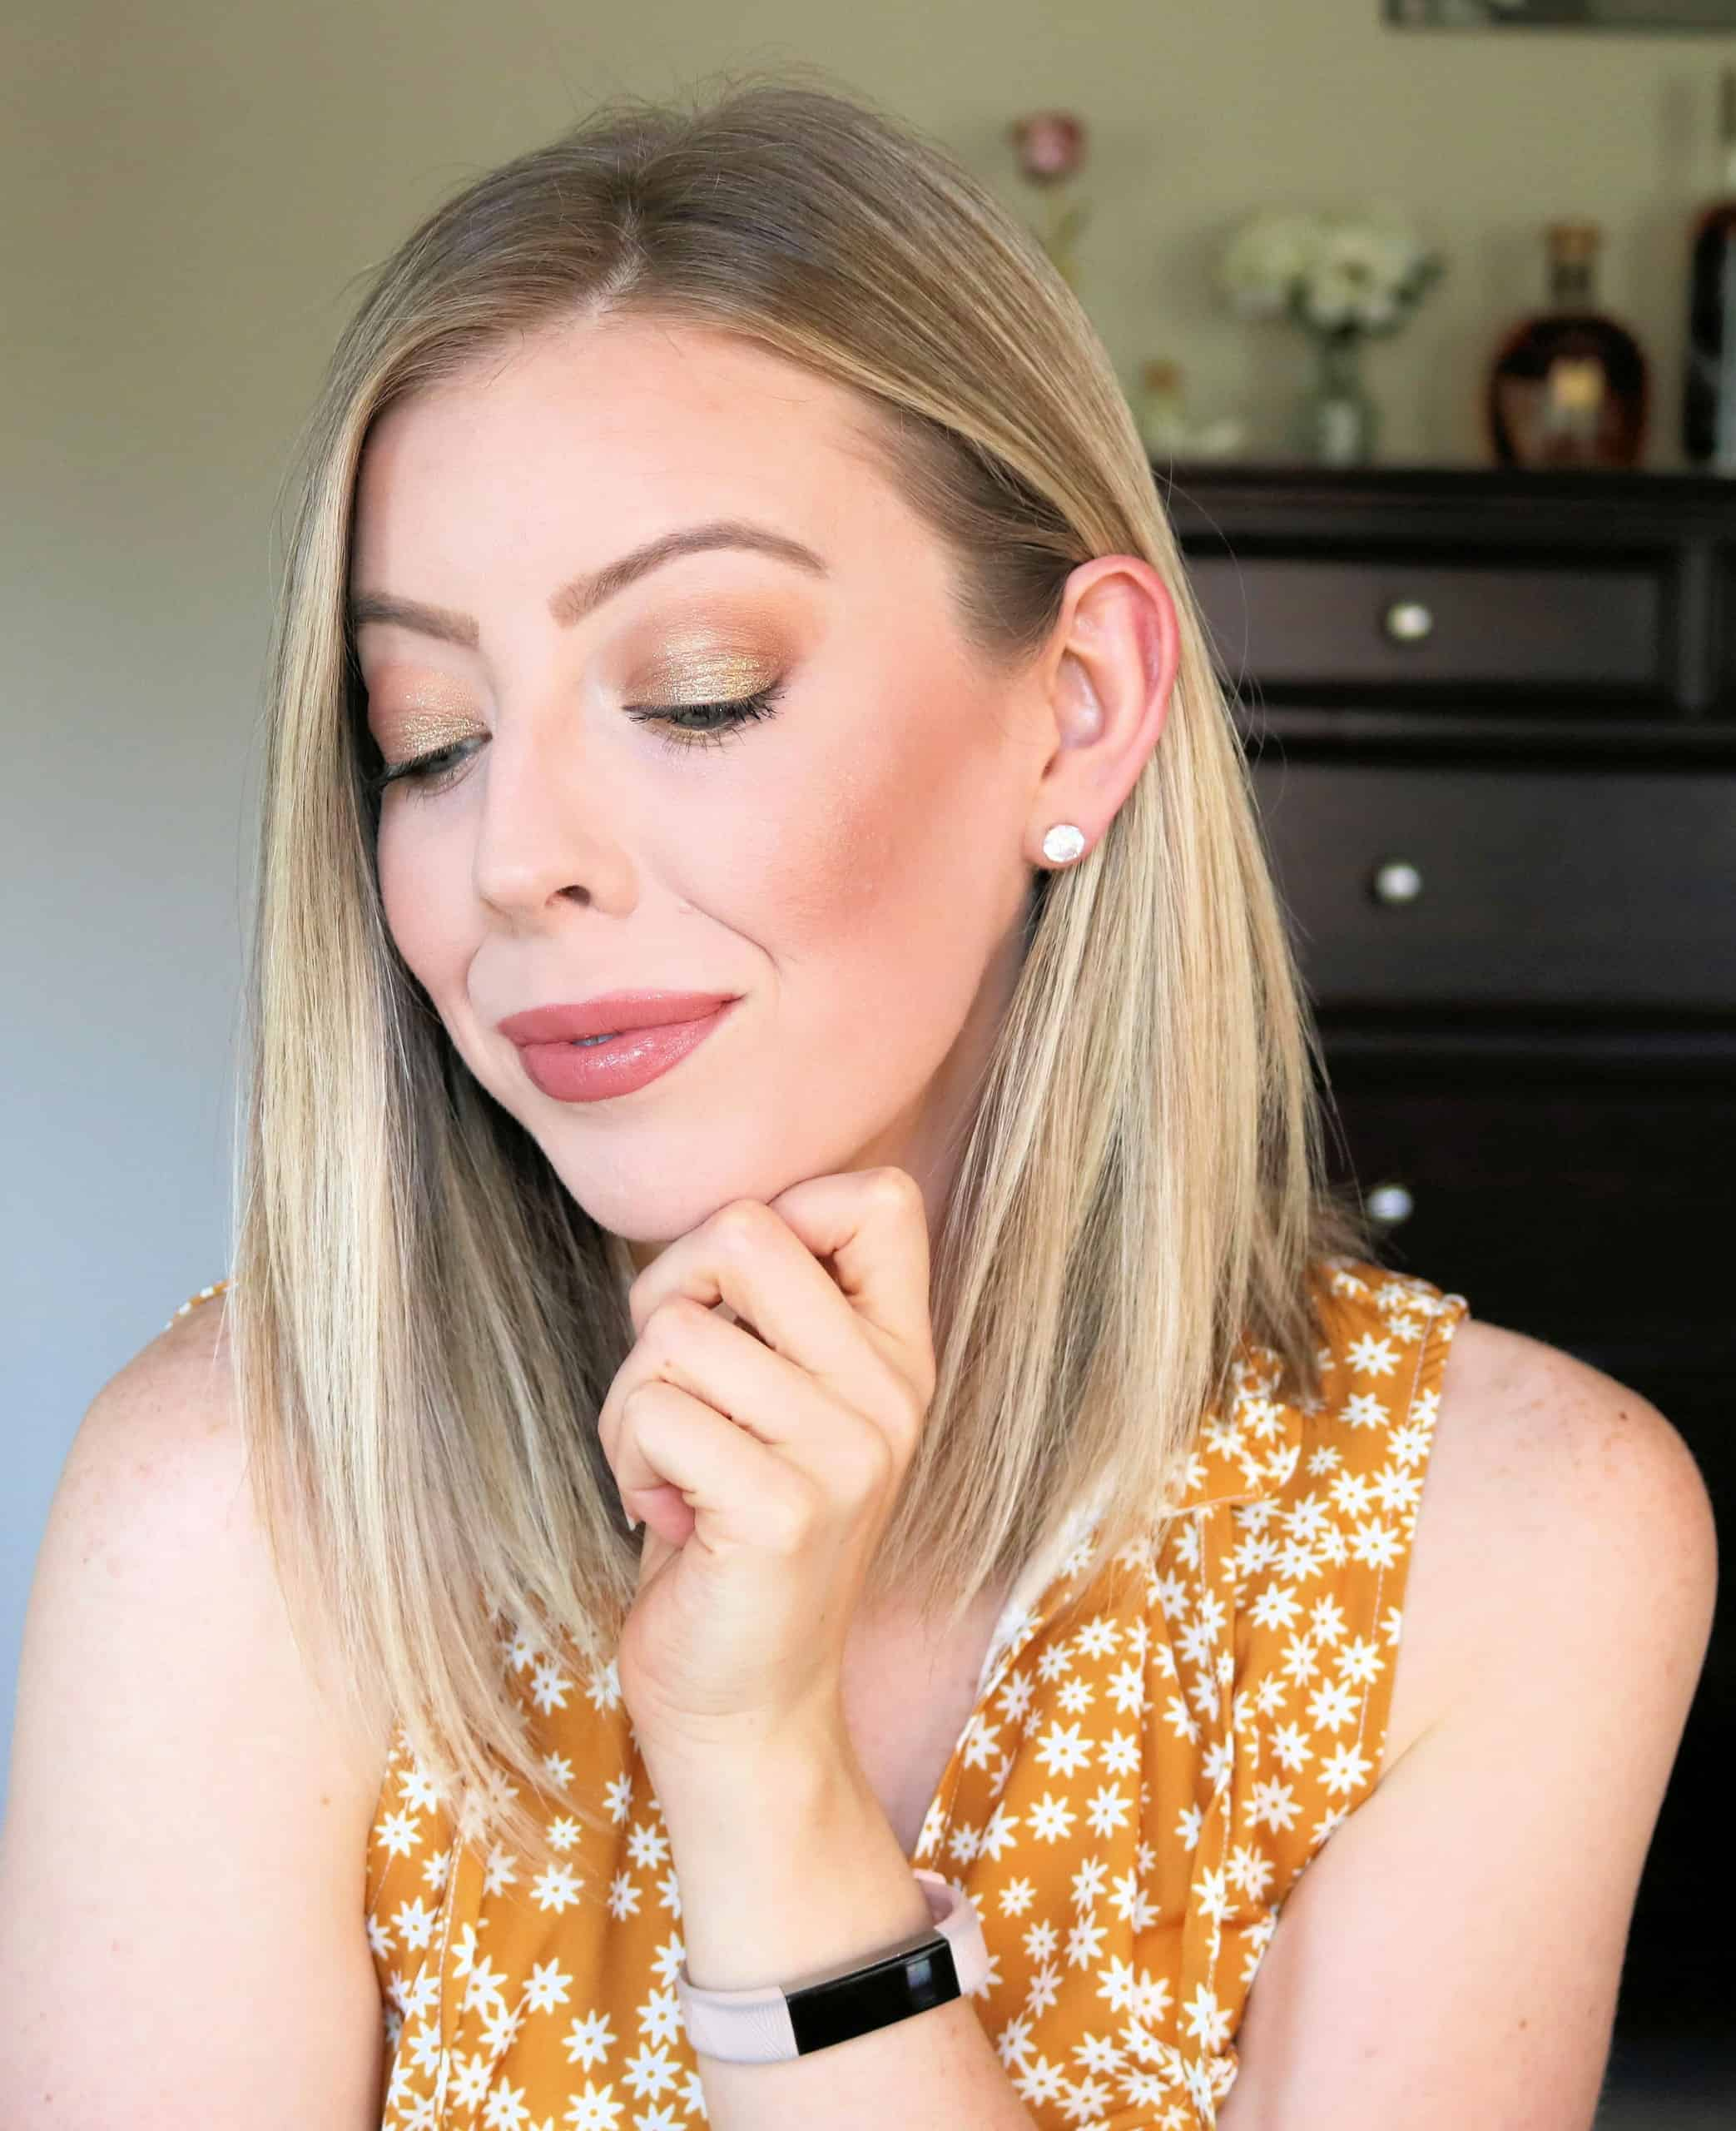 Get your glow on this Summer with this gorgeous sunkissed gold eye makeup look using the Physicians Formula The Gold Vault 24-Karat Gold Collagen Face Palette. This gold and bronze makeup look is such a fun and easy summer makeup look! #ad #physiciansformula #24KaratCollection #makeuplook #makeuptutorial #summermakeup #goldeyemakeup